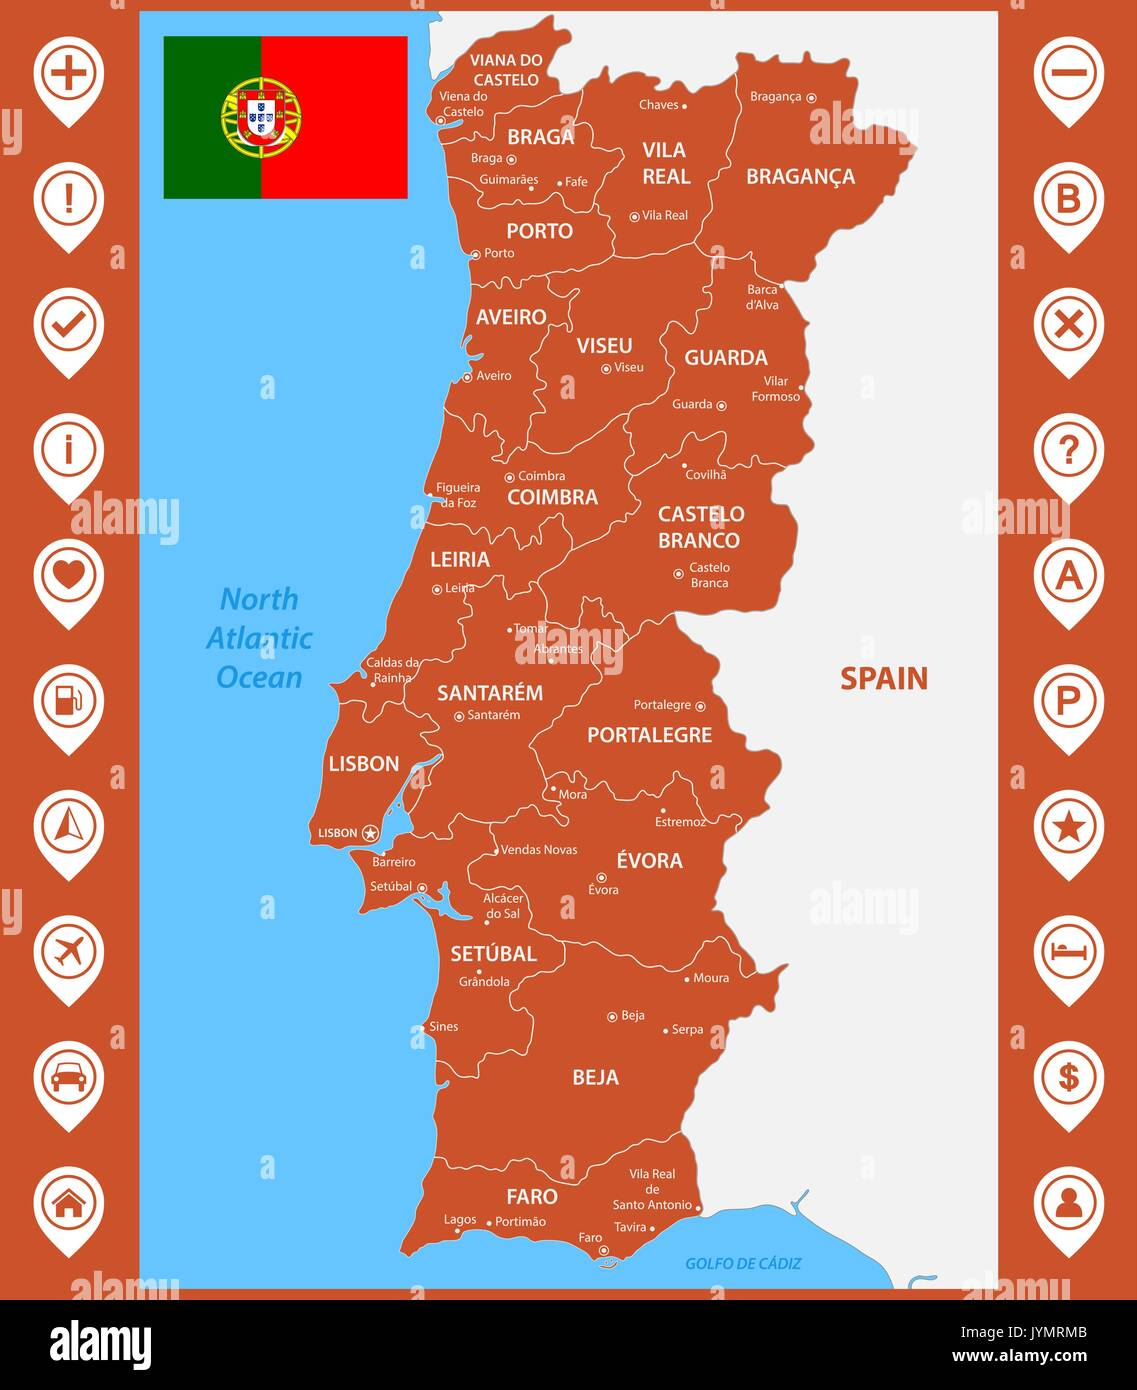 the detailed map of portugal with regions or states and cities